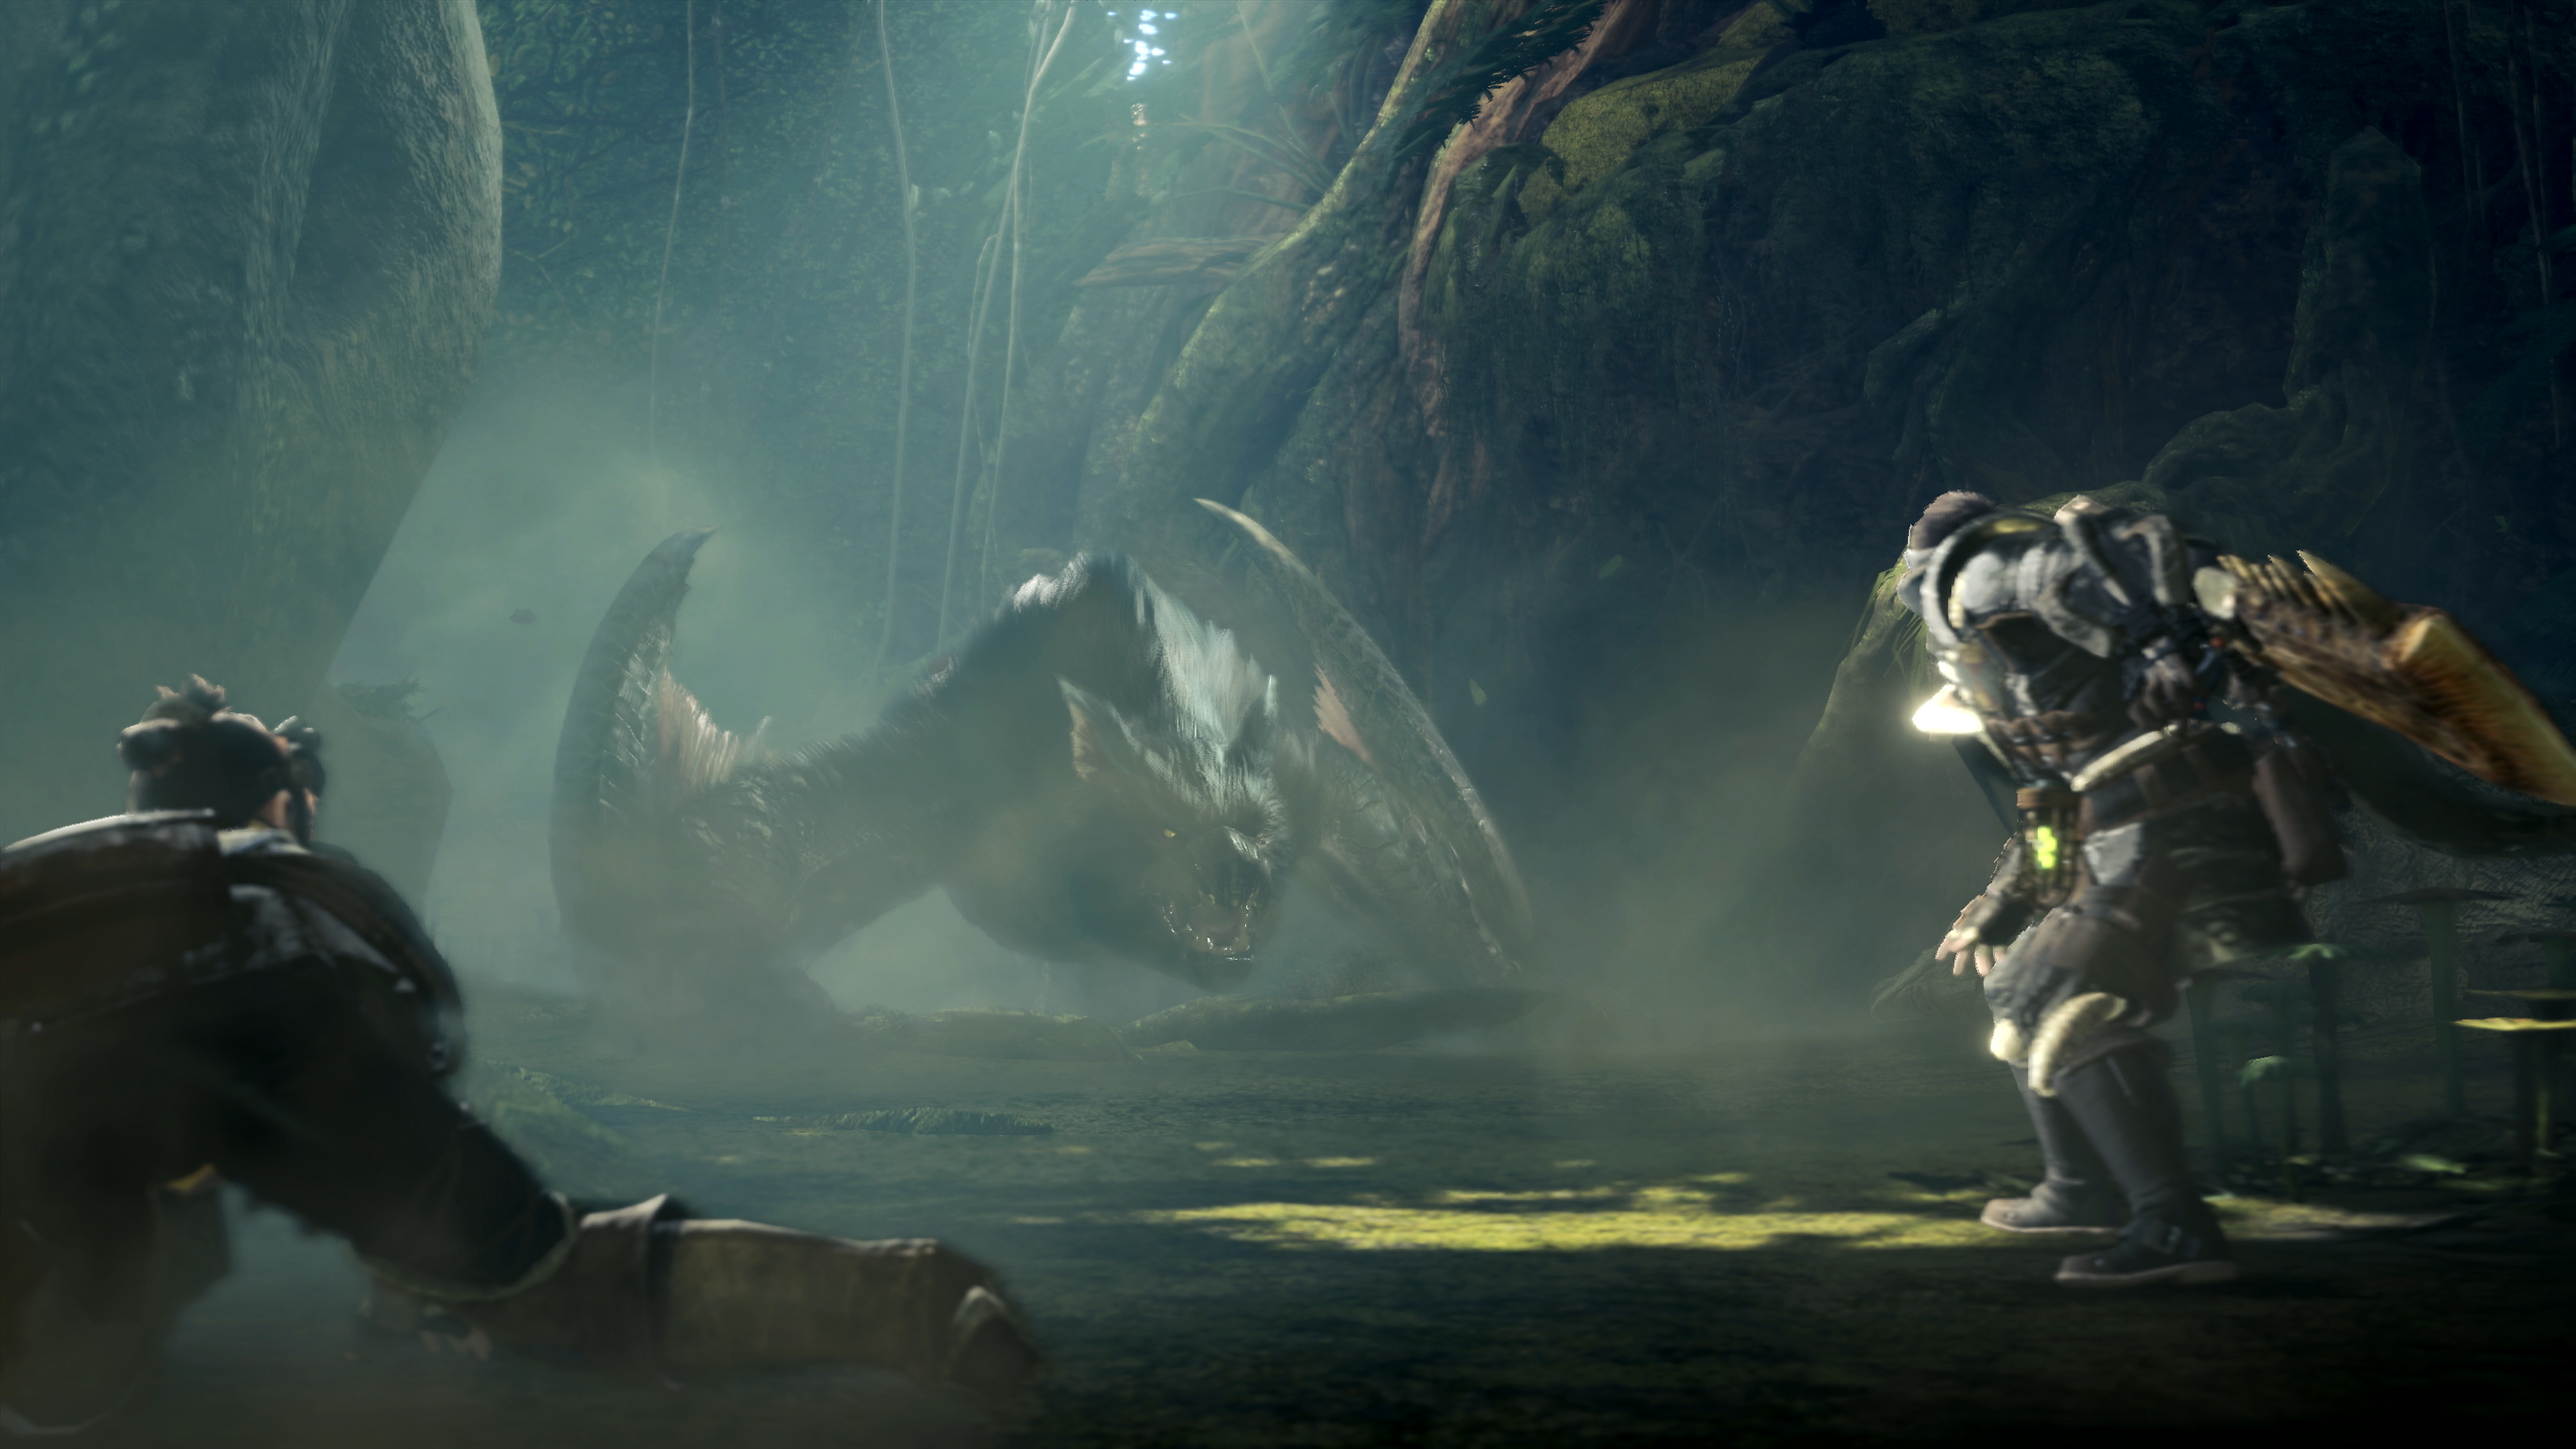 Monster Hunter Hd Wallpaper Posted By Ethan Simpson